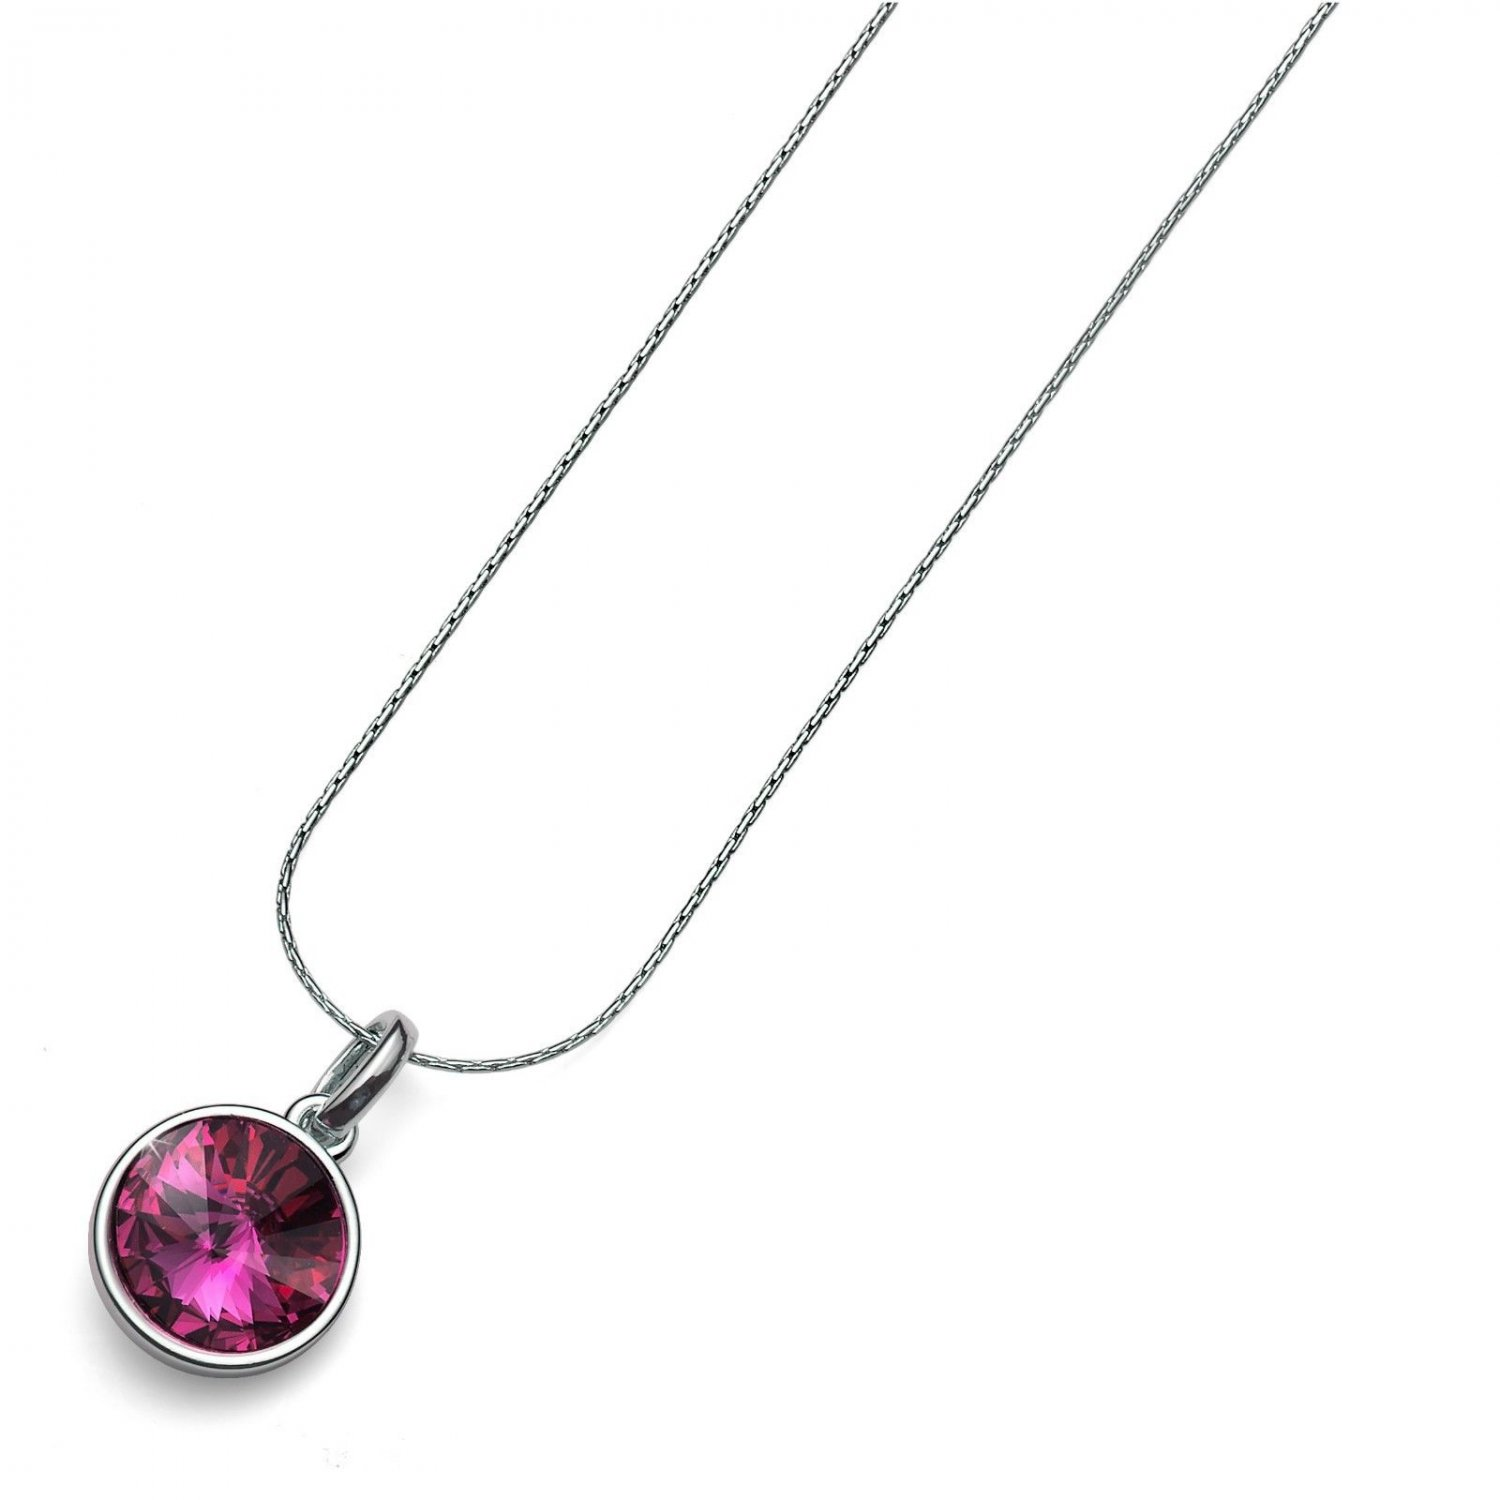 Silver Chain Necklace Fuchsia Swarovski Elements Bezel Pendant Oliver Weber Fun